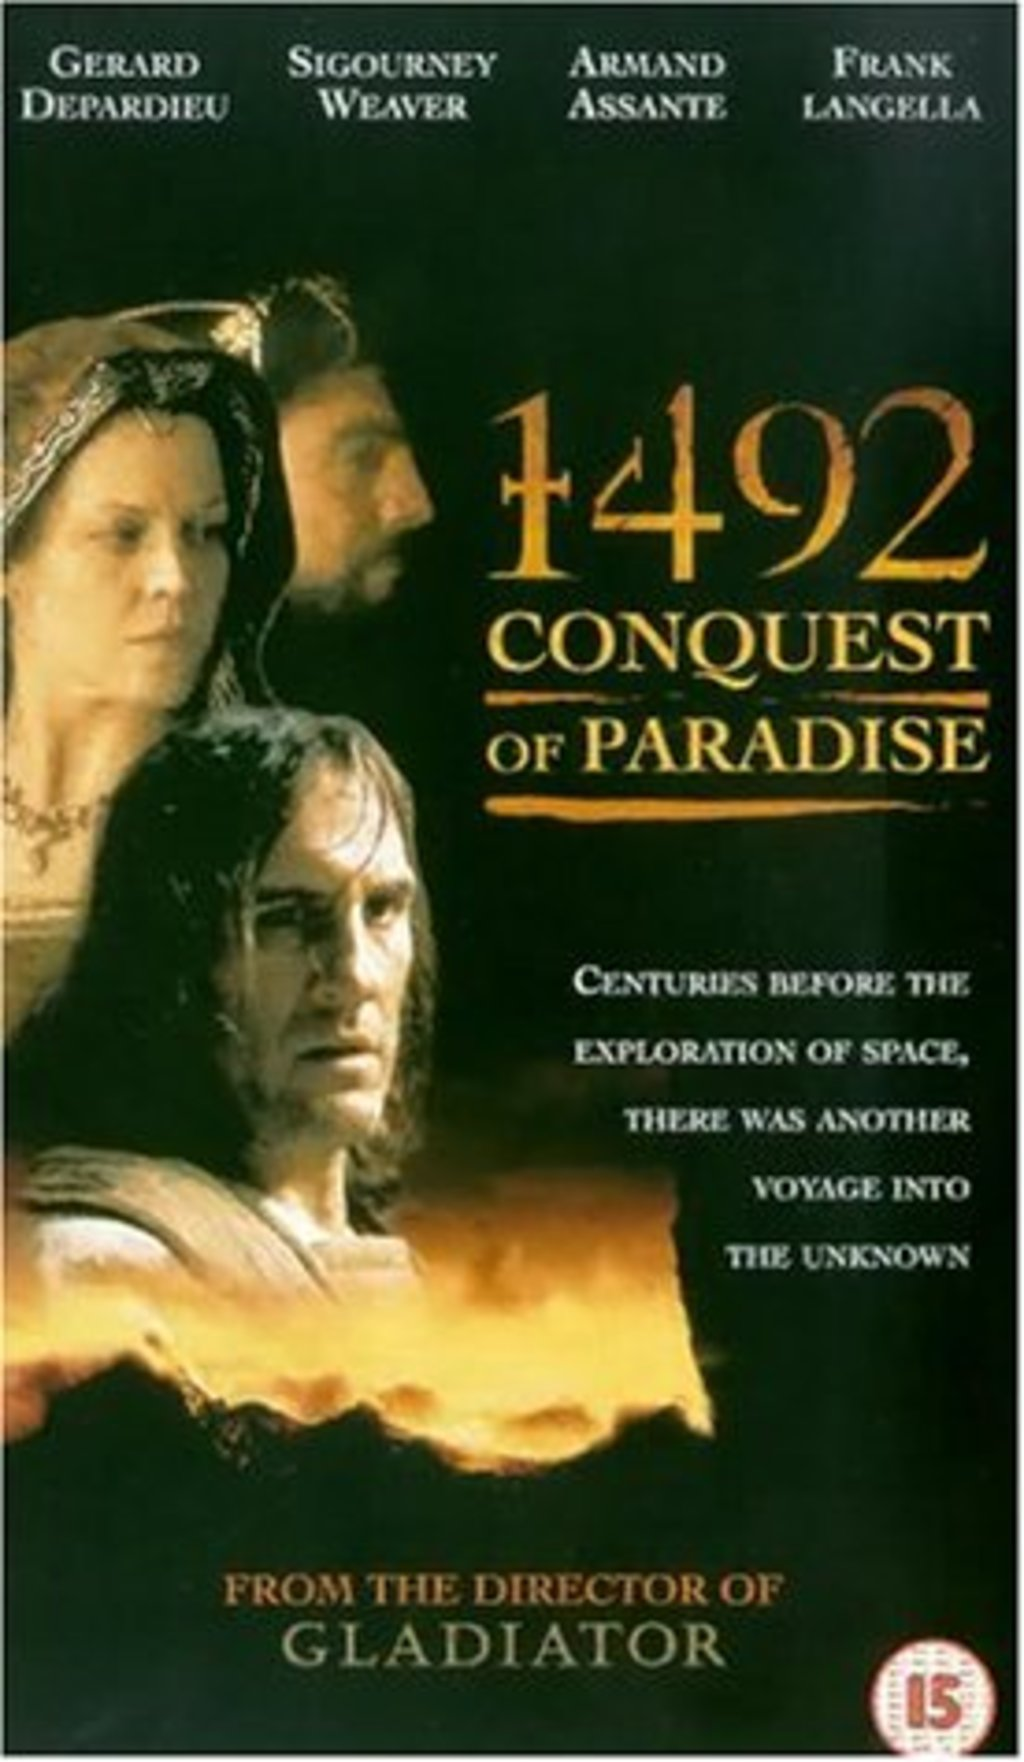 an analysis of the movie conquest of paradise Summaries big budget account of christopher columbus' discovery of the americas released in 1992 to celebrate the 500th anniversary of the discovery.